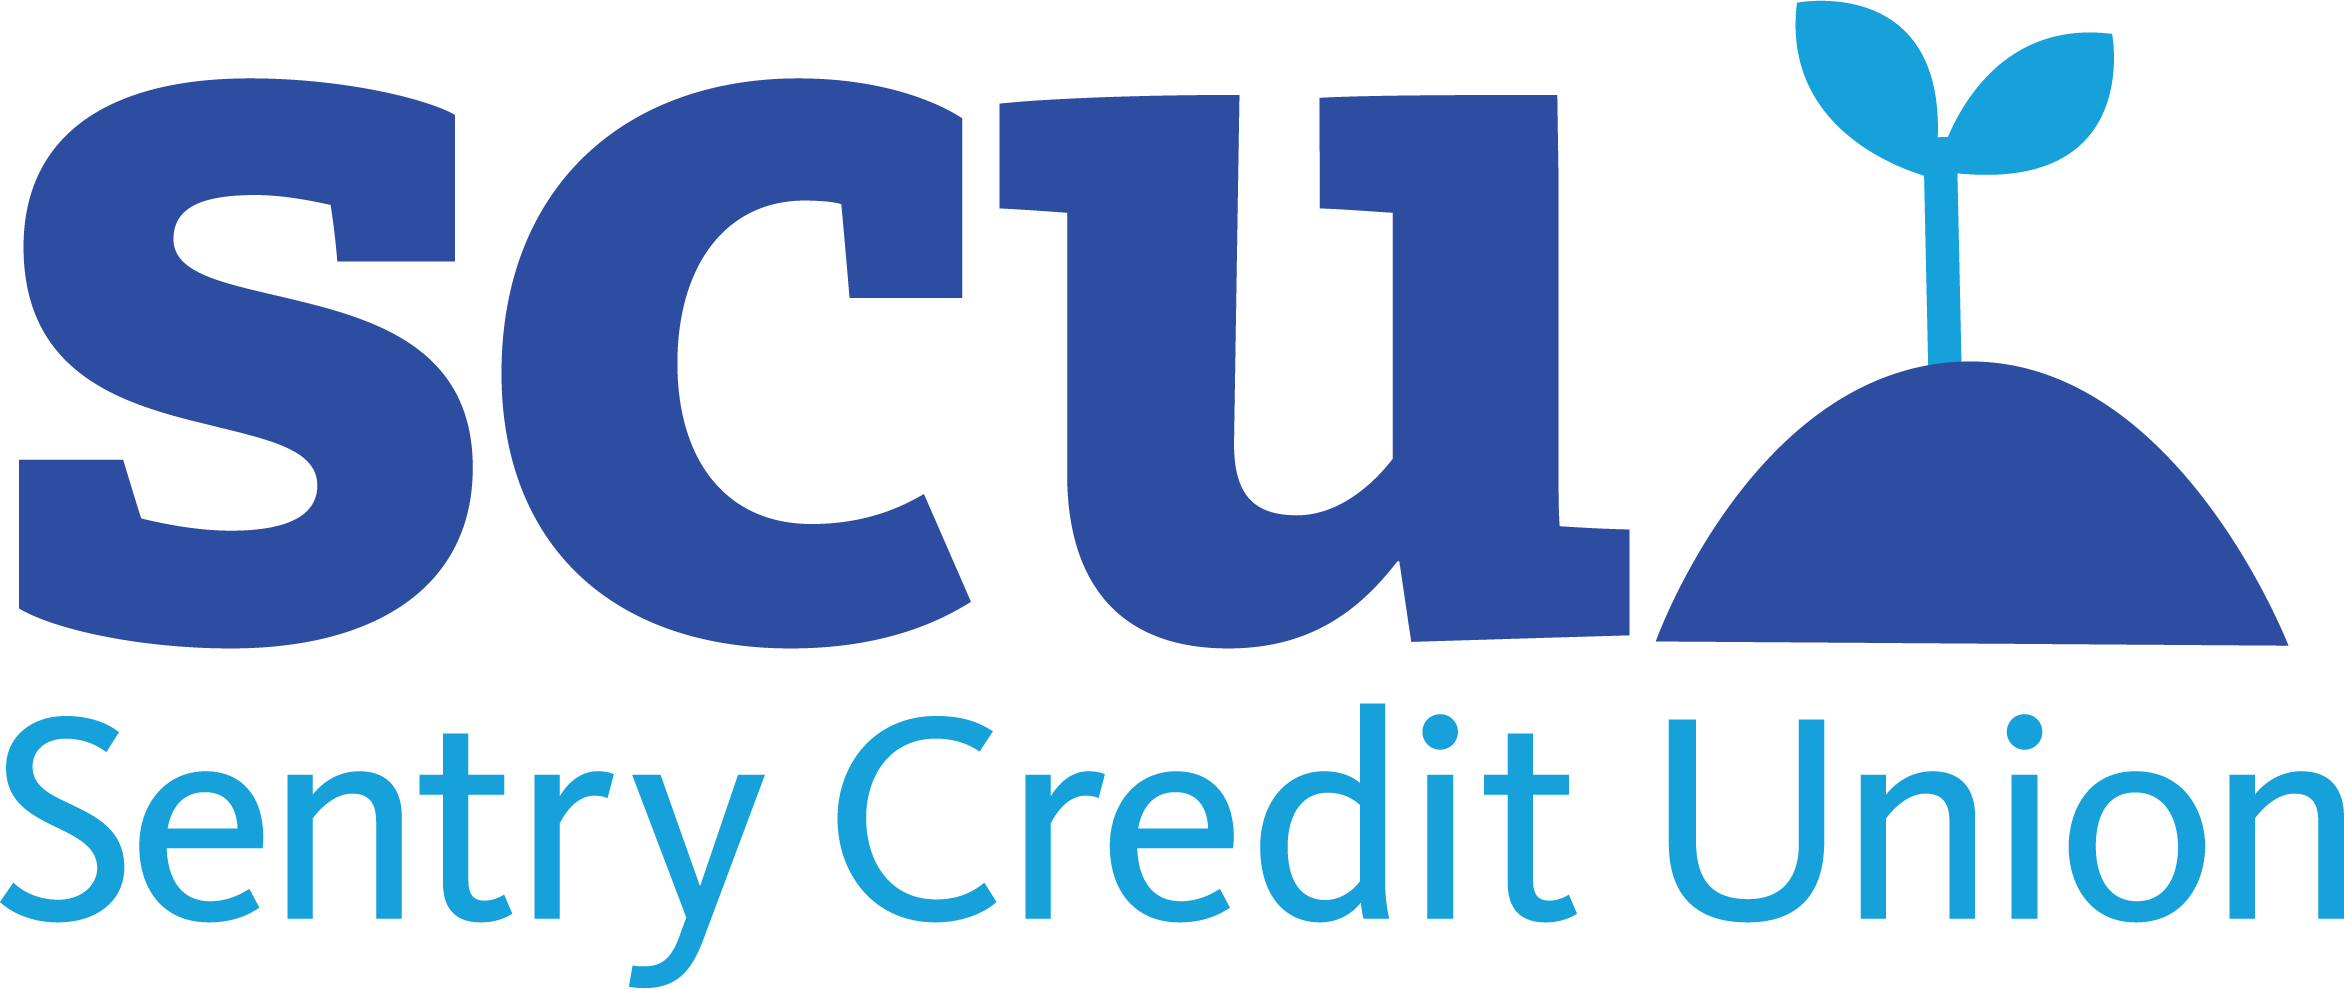 Sentry Credit Union_Logo